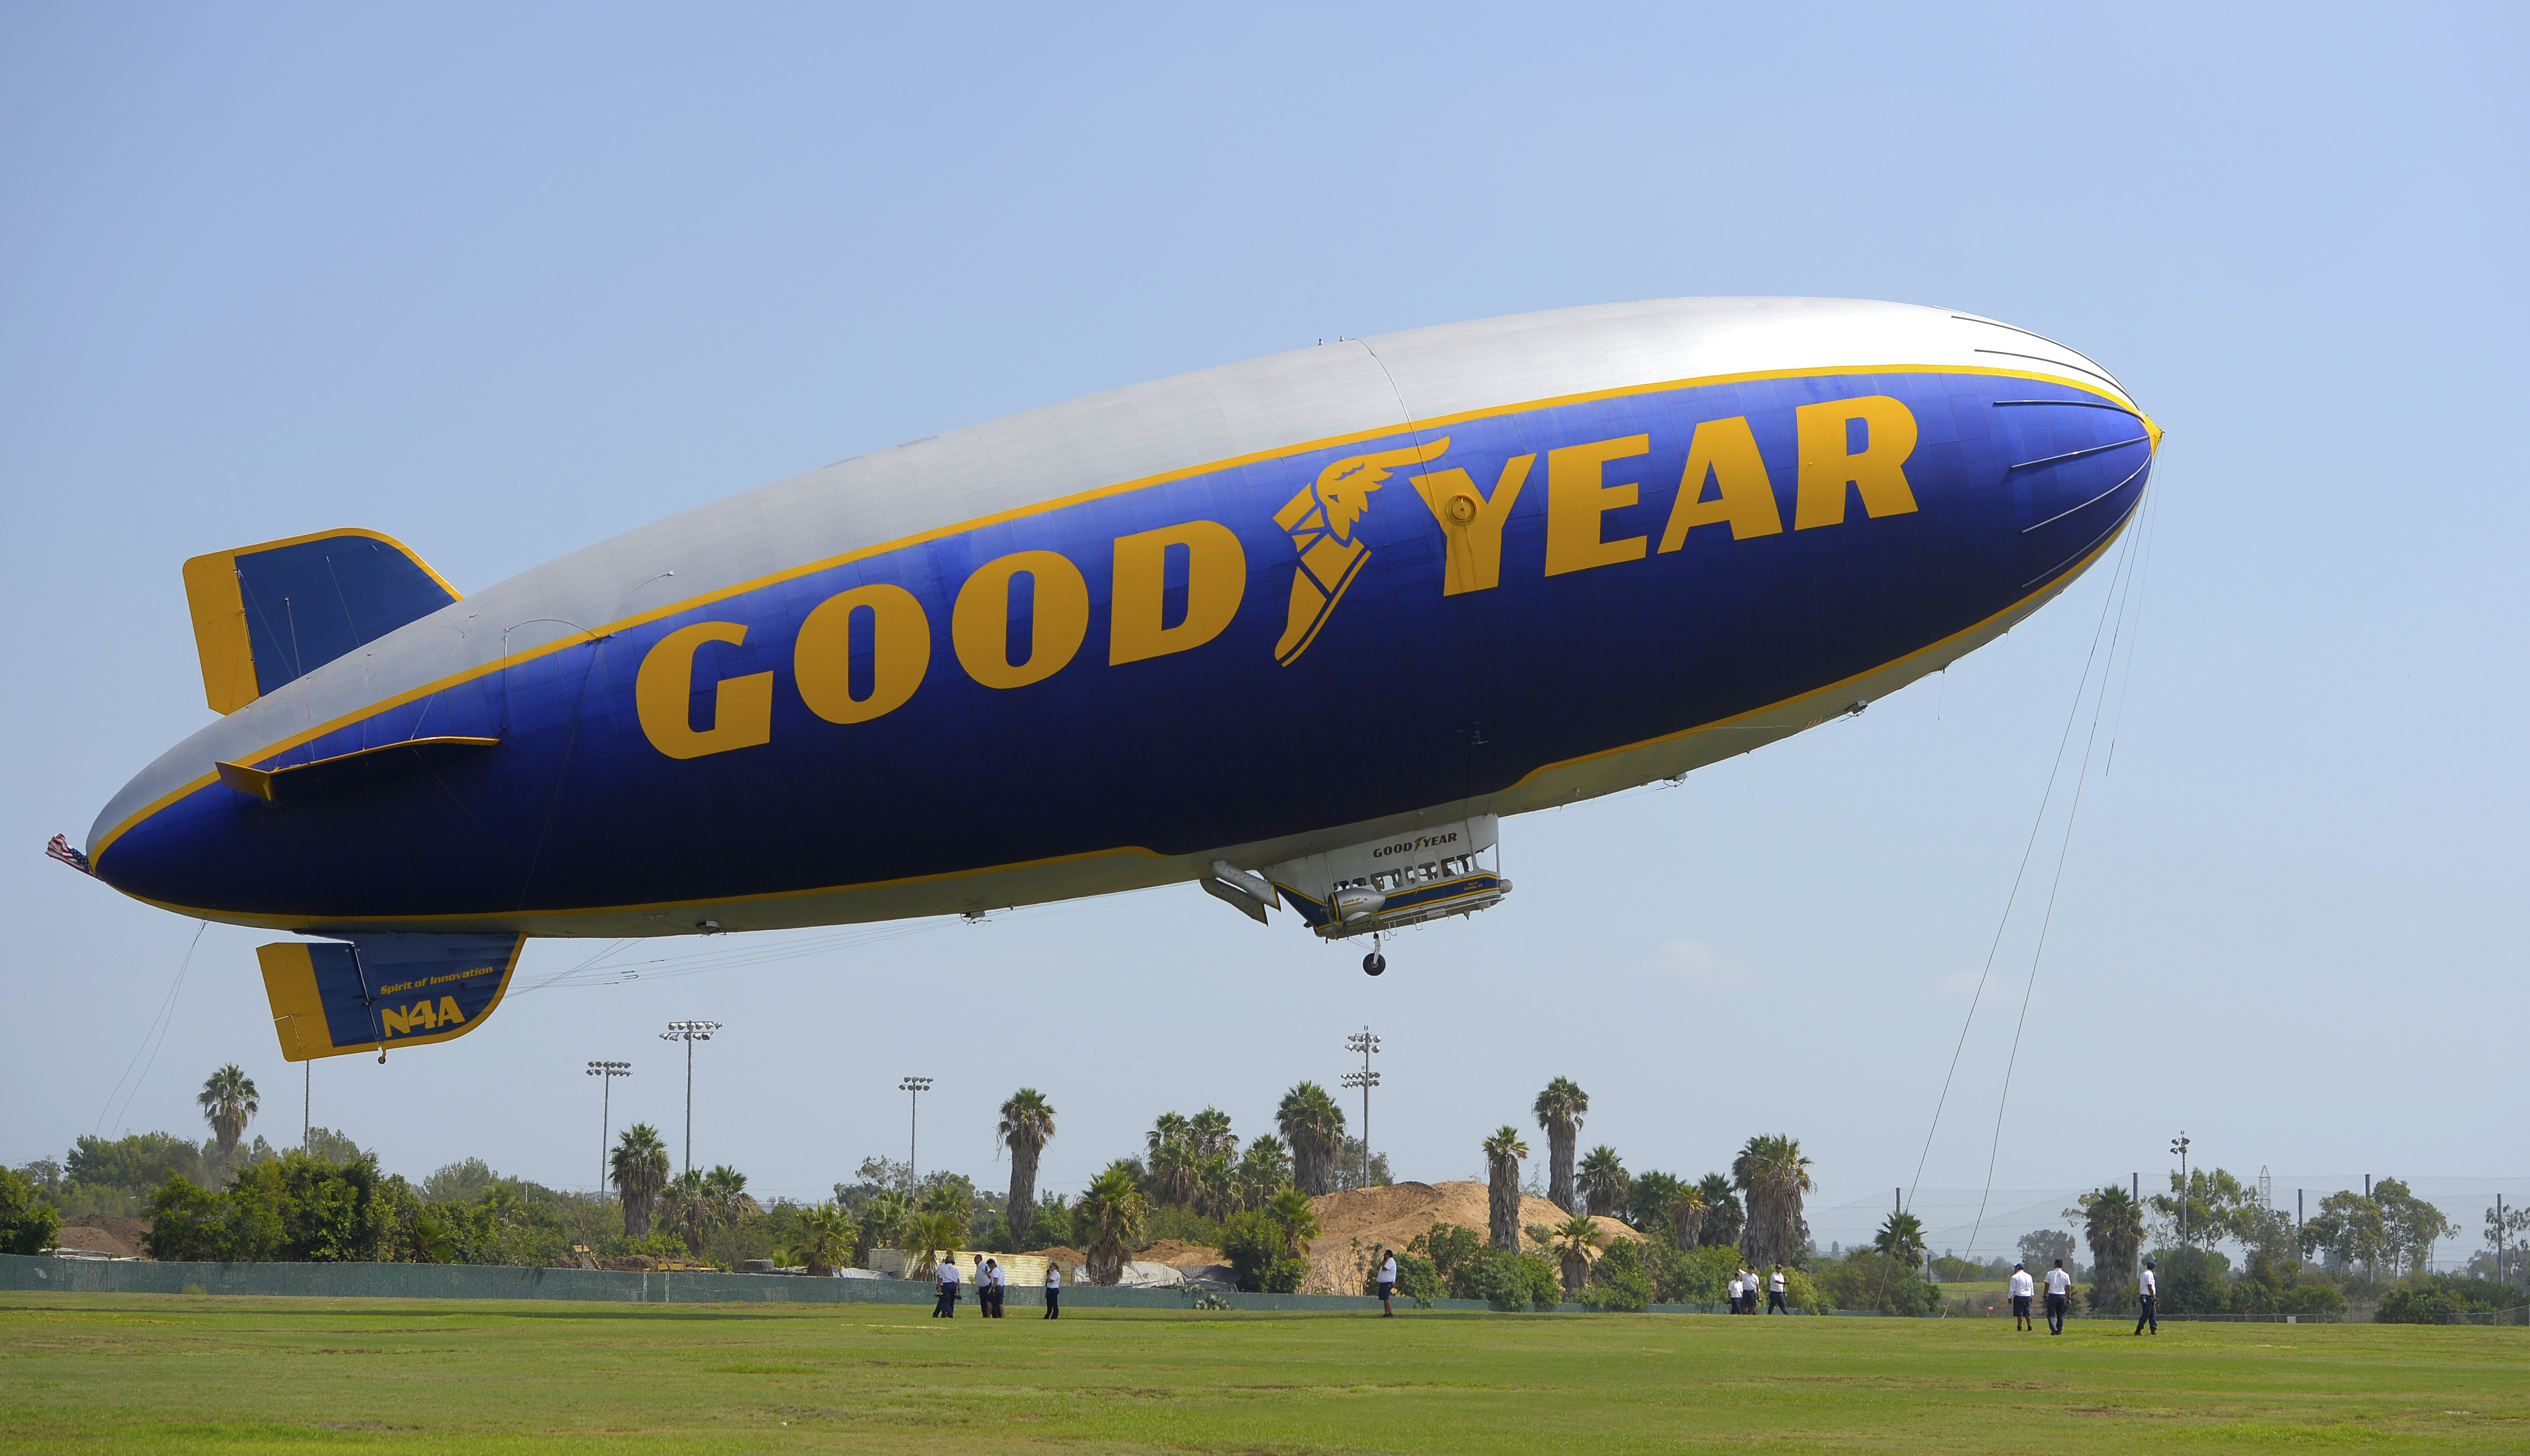 Here's how you can say goodbye to the retiring Goodyear blimp ...